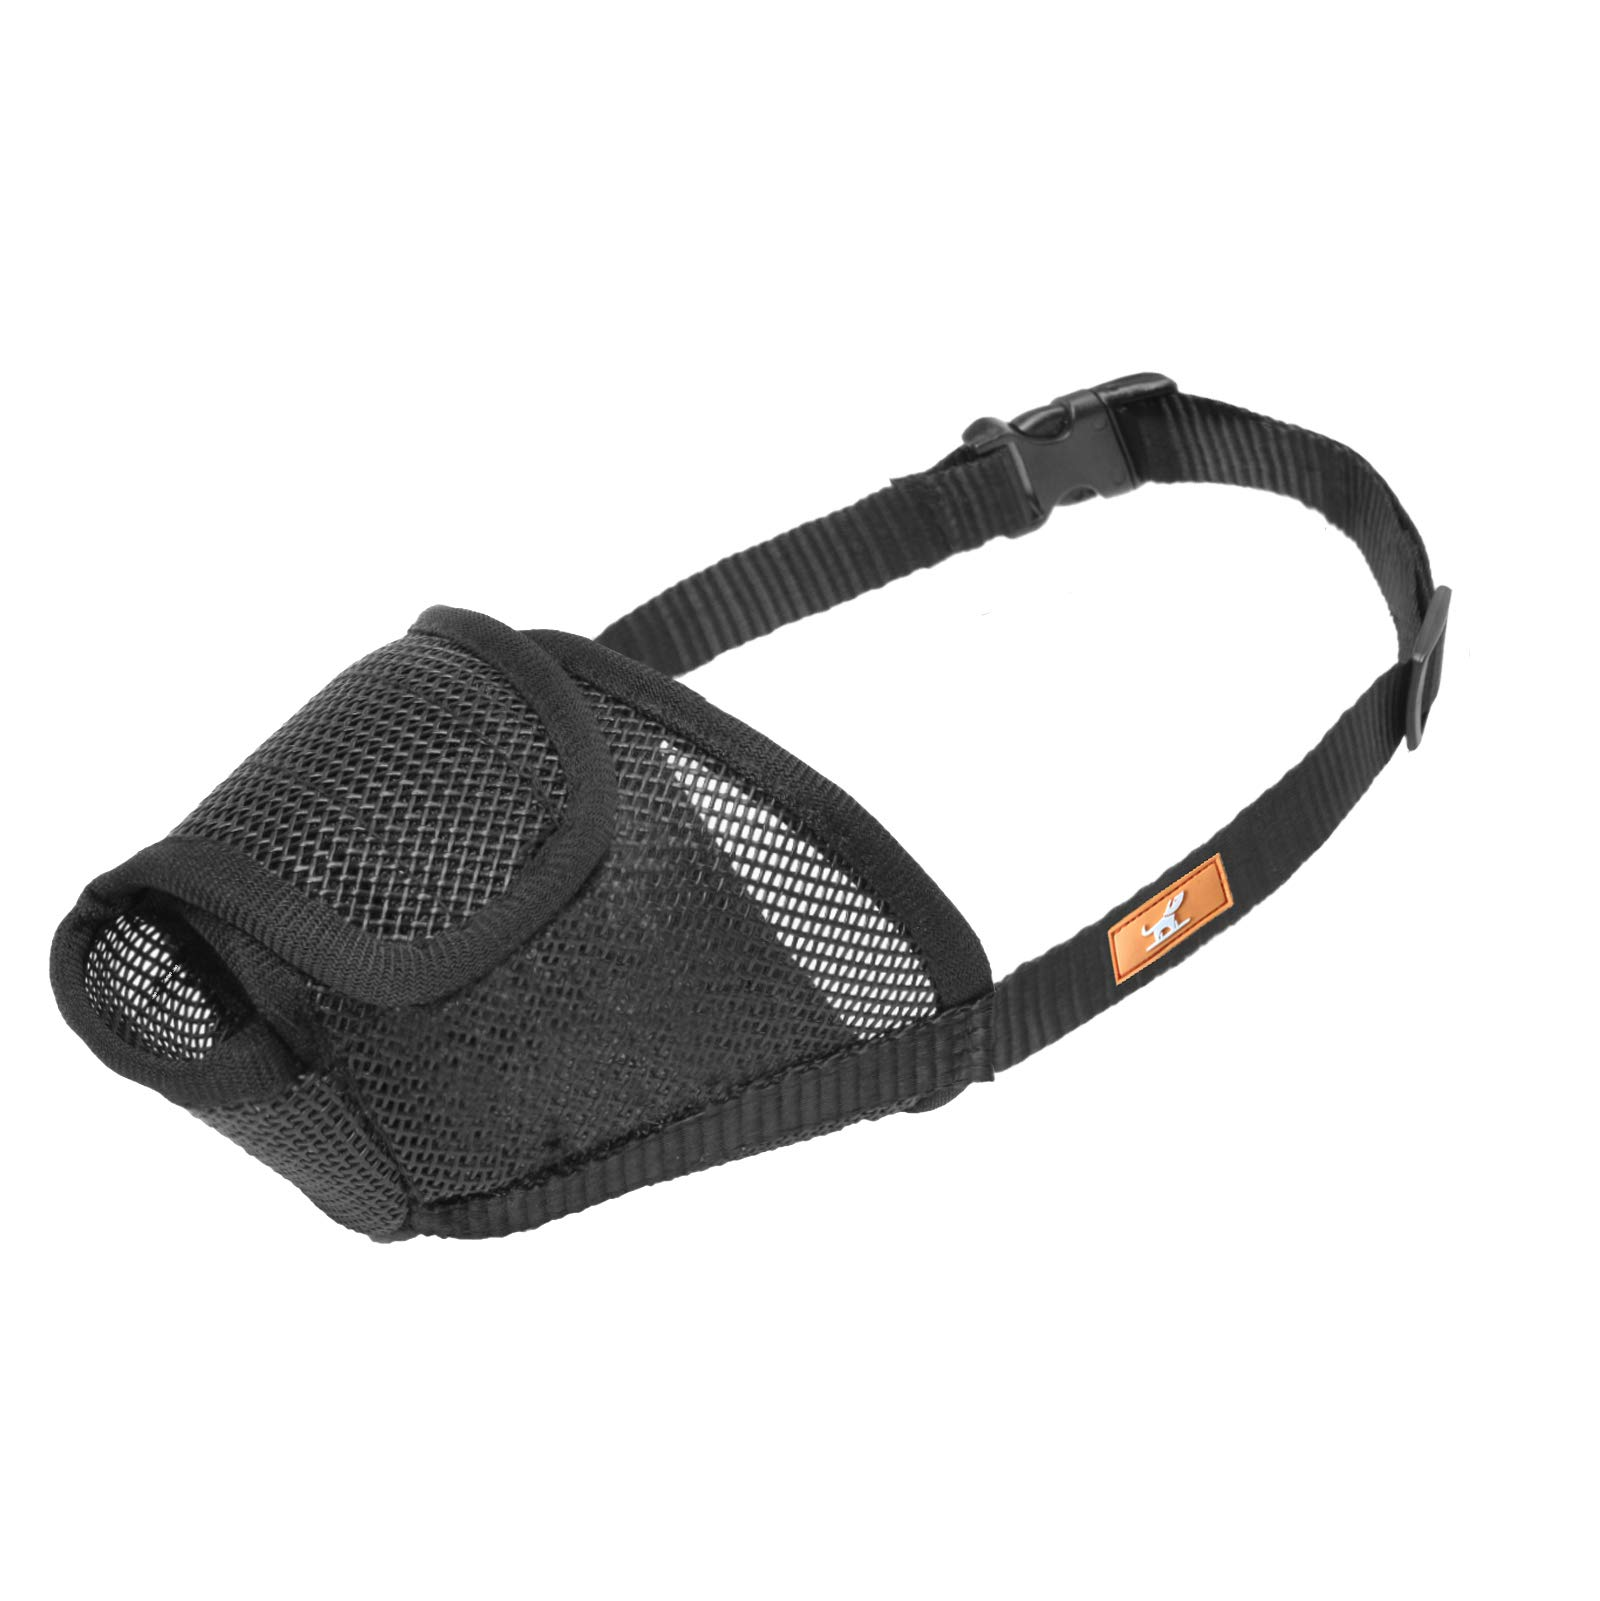 Dog Muzzle Mesh with Overhead Strap, Breathable Mask Mouth Guard Muzzle for Dogs Prevent Biting Chewing, Adjustable